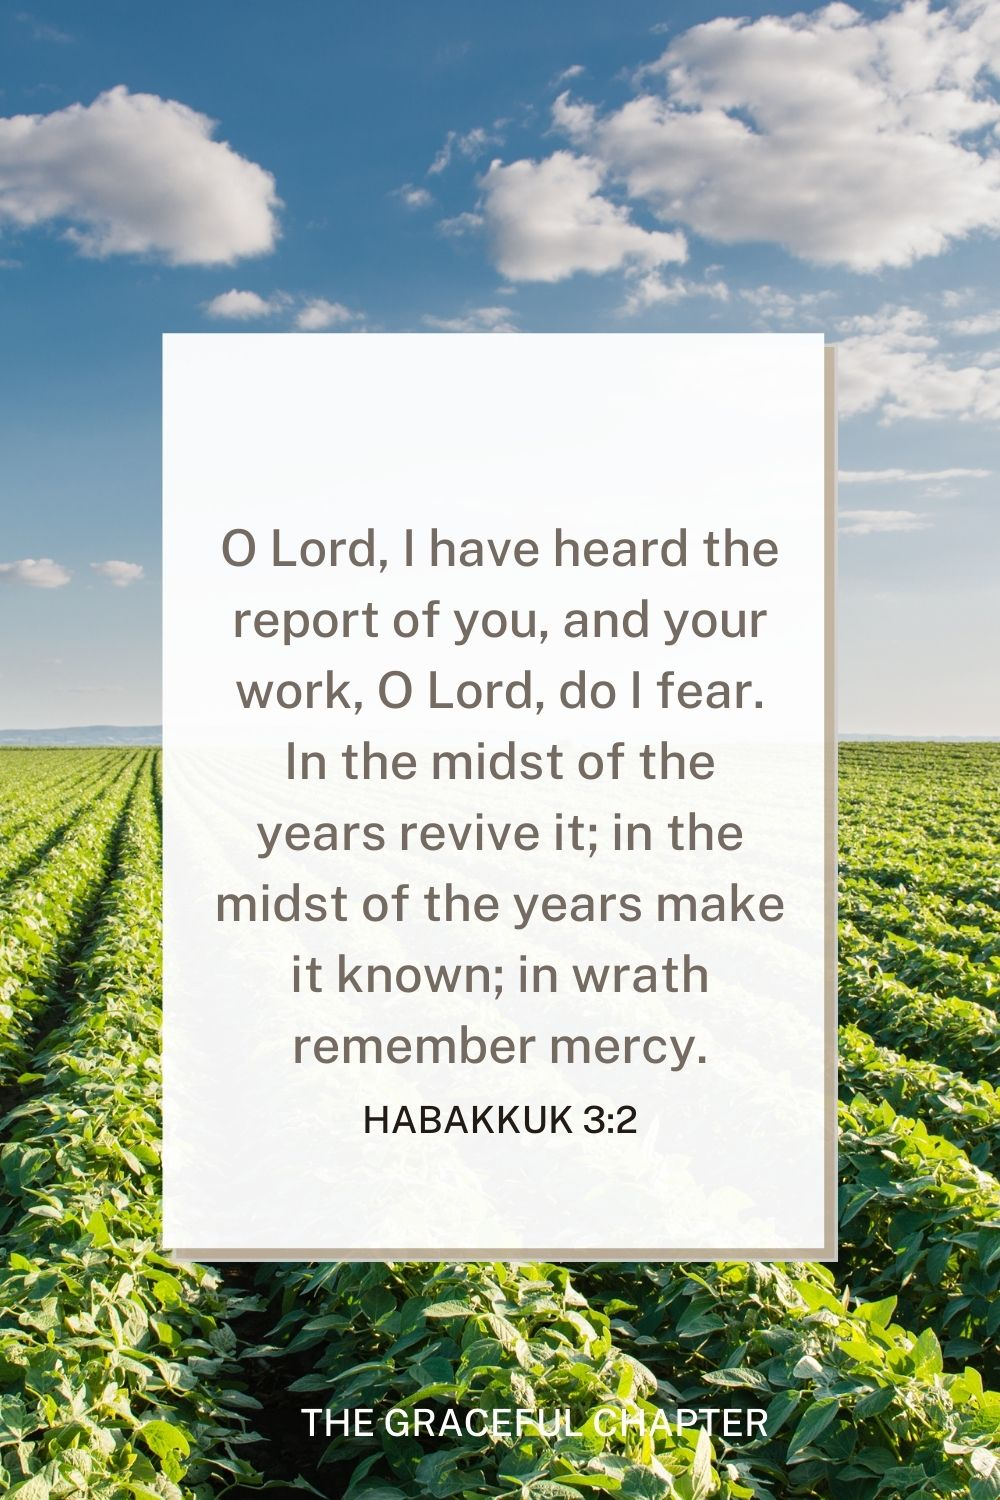 O Lord, I have heard the report of you, and your work, O Lord, do I fear. In the midst of the years revive it; in the midst of the years make it known; in wrath remember mercy. Habakkuk 3:2